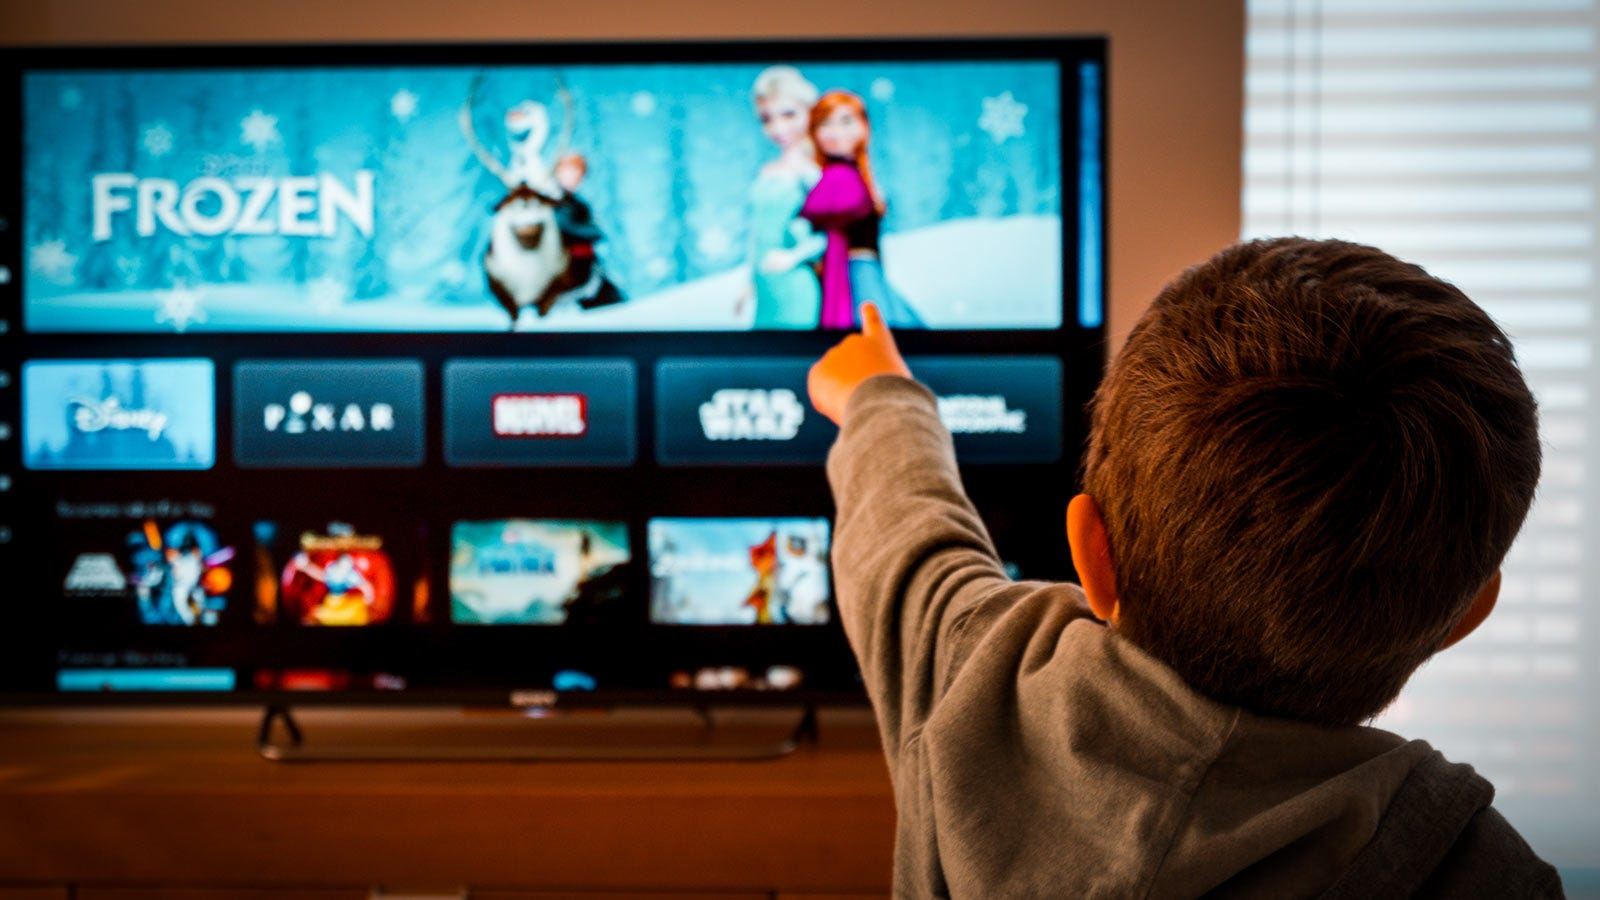 A boy watching TV, pointing excitedly at the Disney movie offerings.